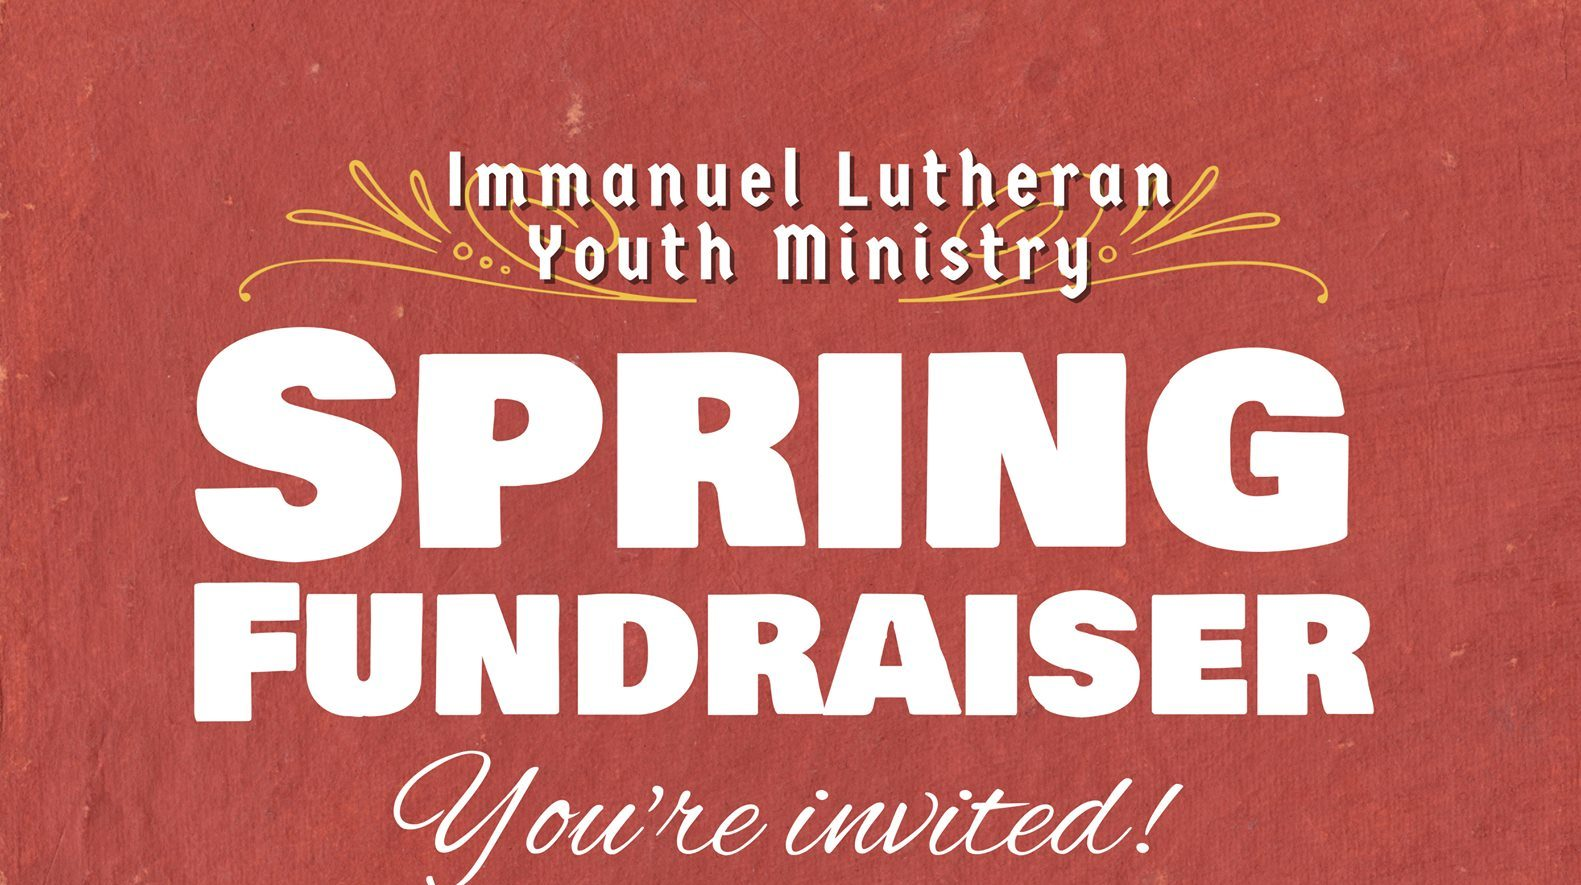 Youth Ministry Spring Fundraiser Is Saturday Feb 17